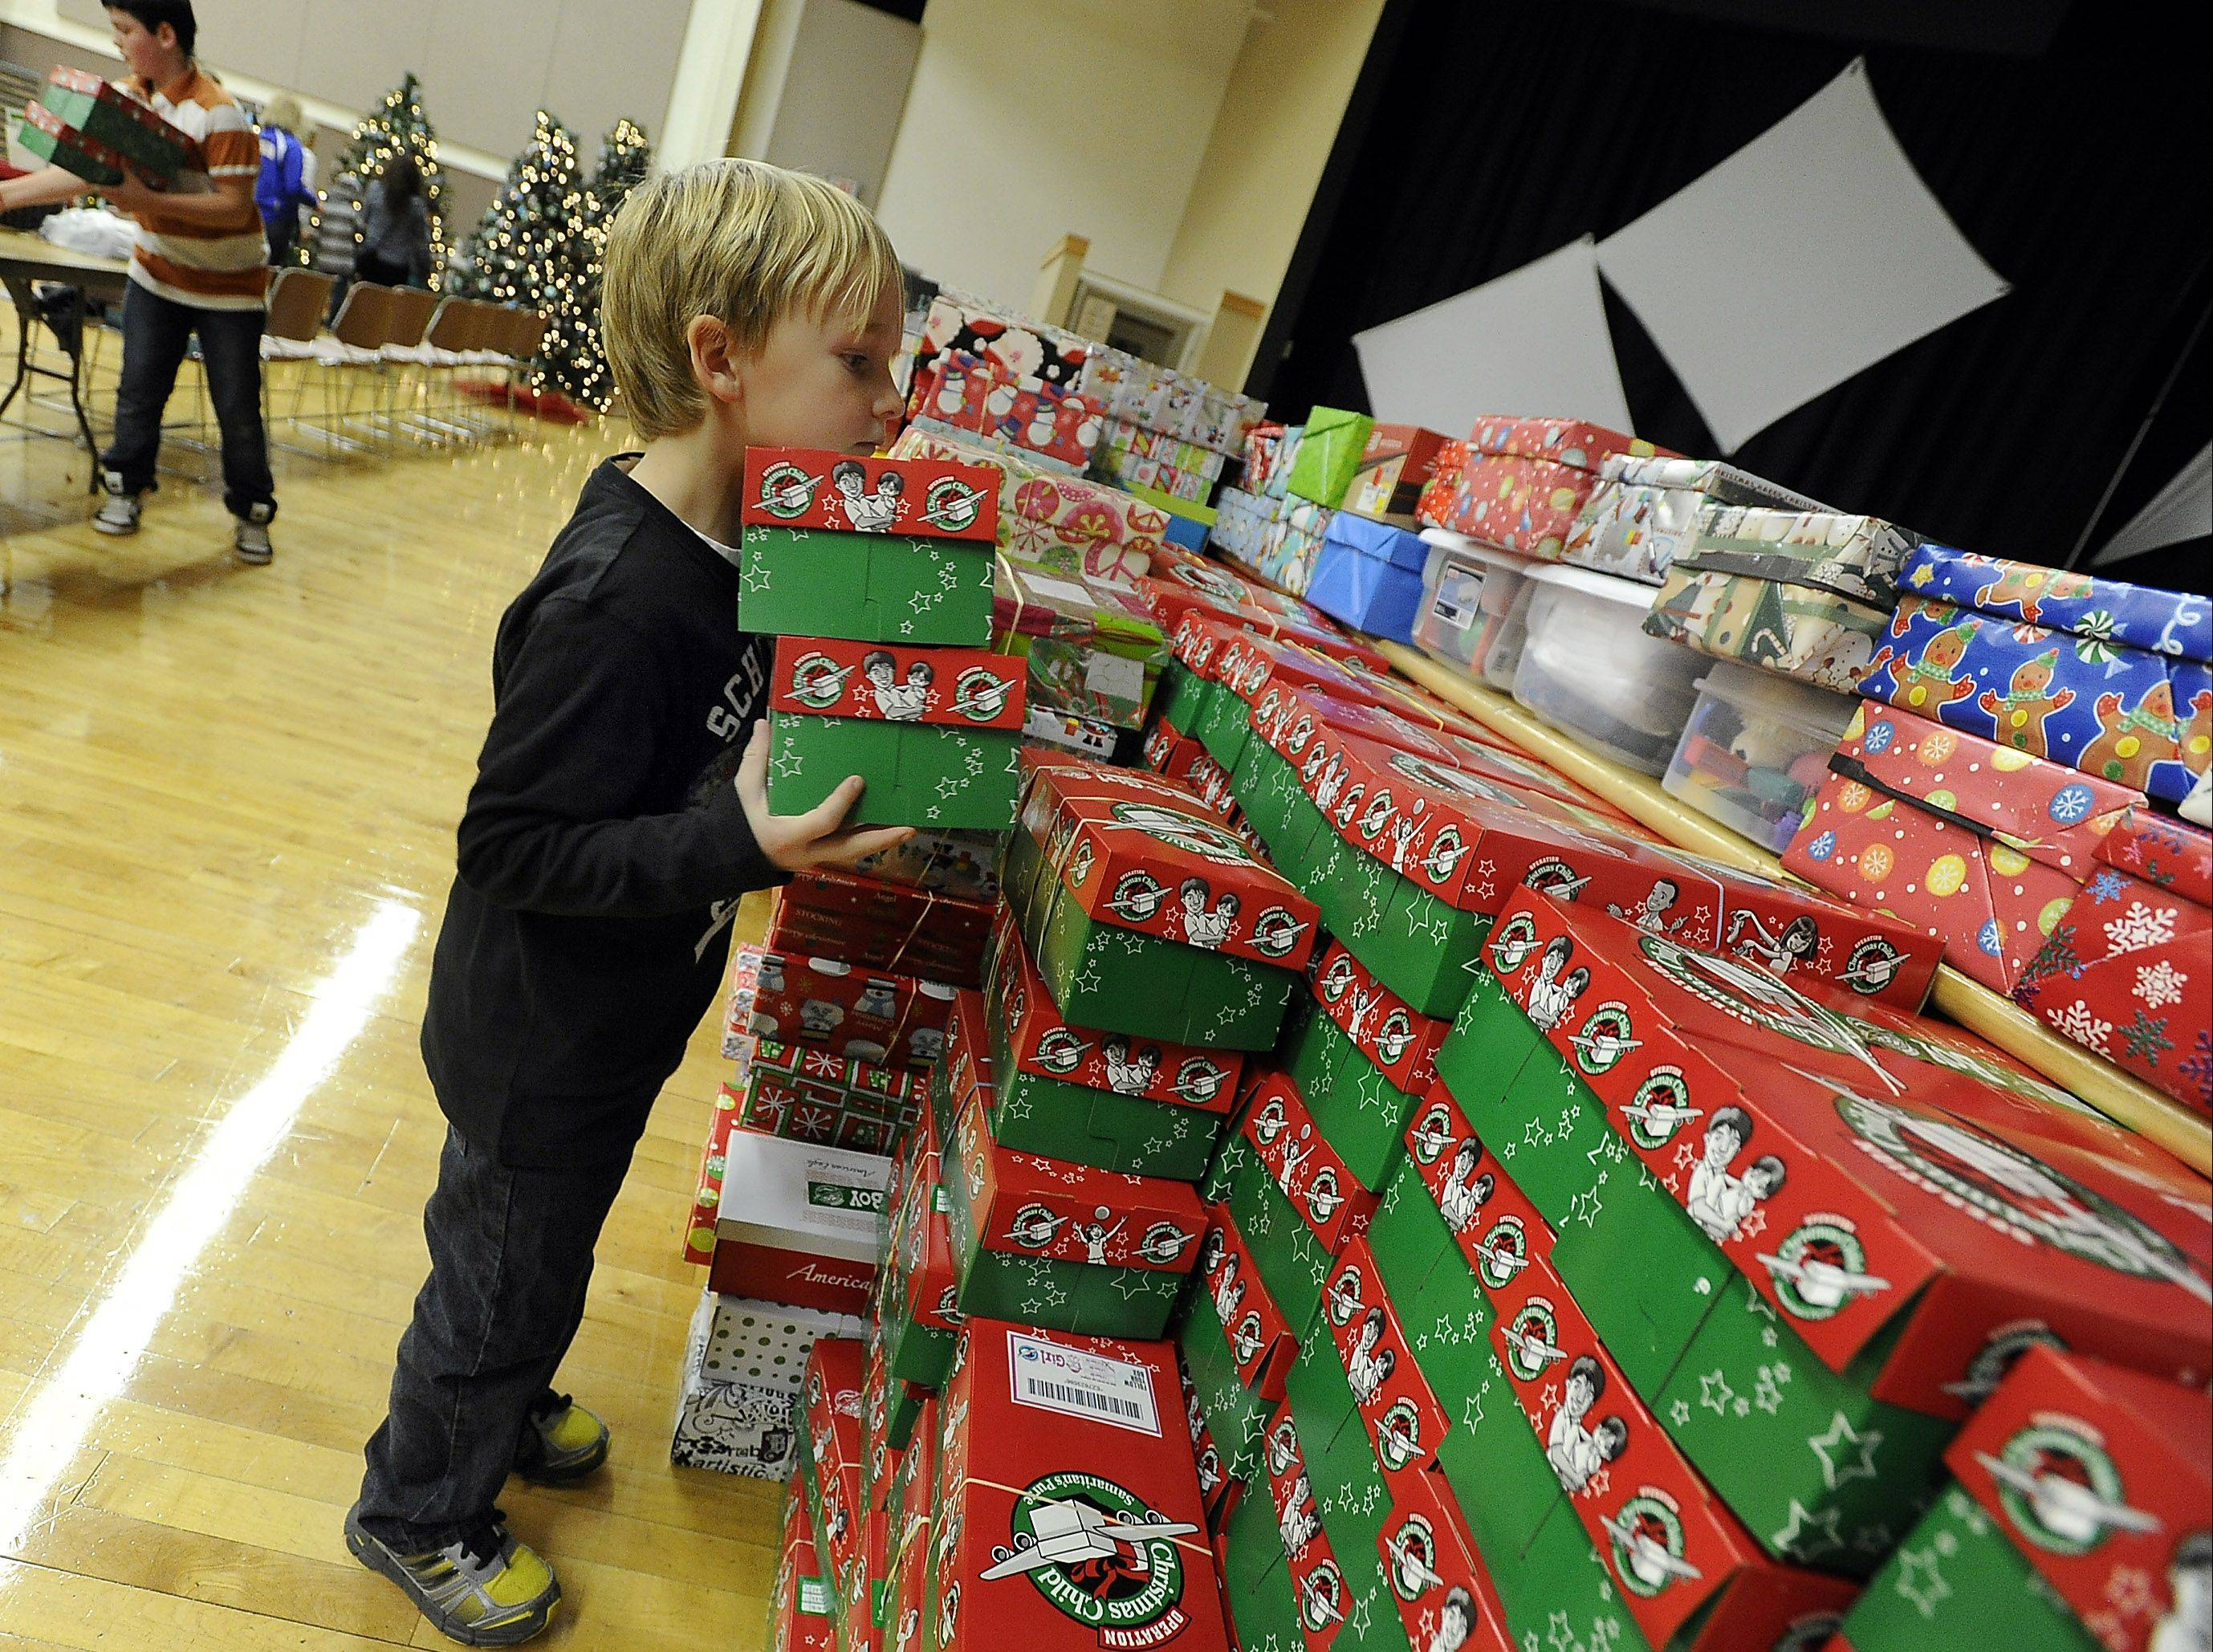 Grayson Peterson, 6, of Wisconsin stacks fully loaded Christmas boxes Saturday during Operation Christmas Child at Immanuel Church in Gurnee. He was helping out his grandfather, Doug Peterson, who is from Libertyville.